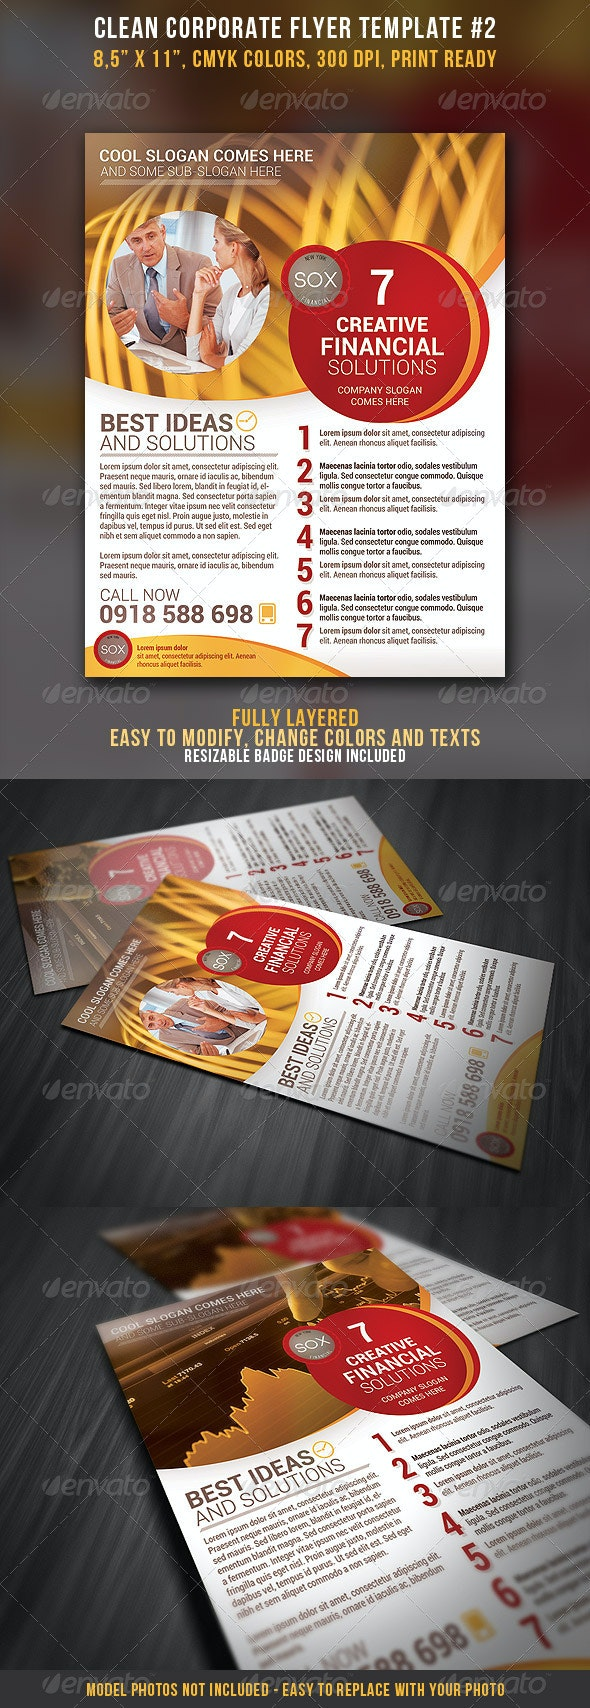 Clean Corporate Flyer #2 - Corporate Flyers